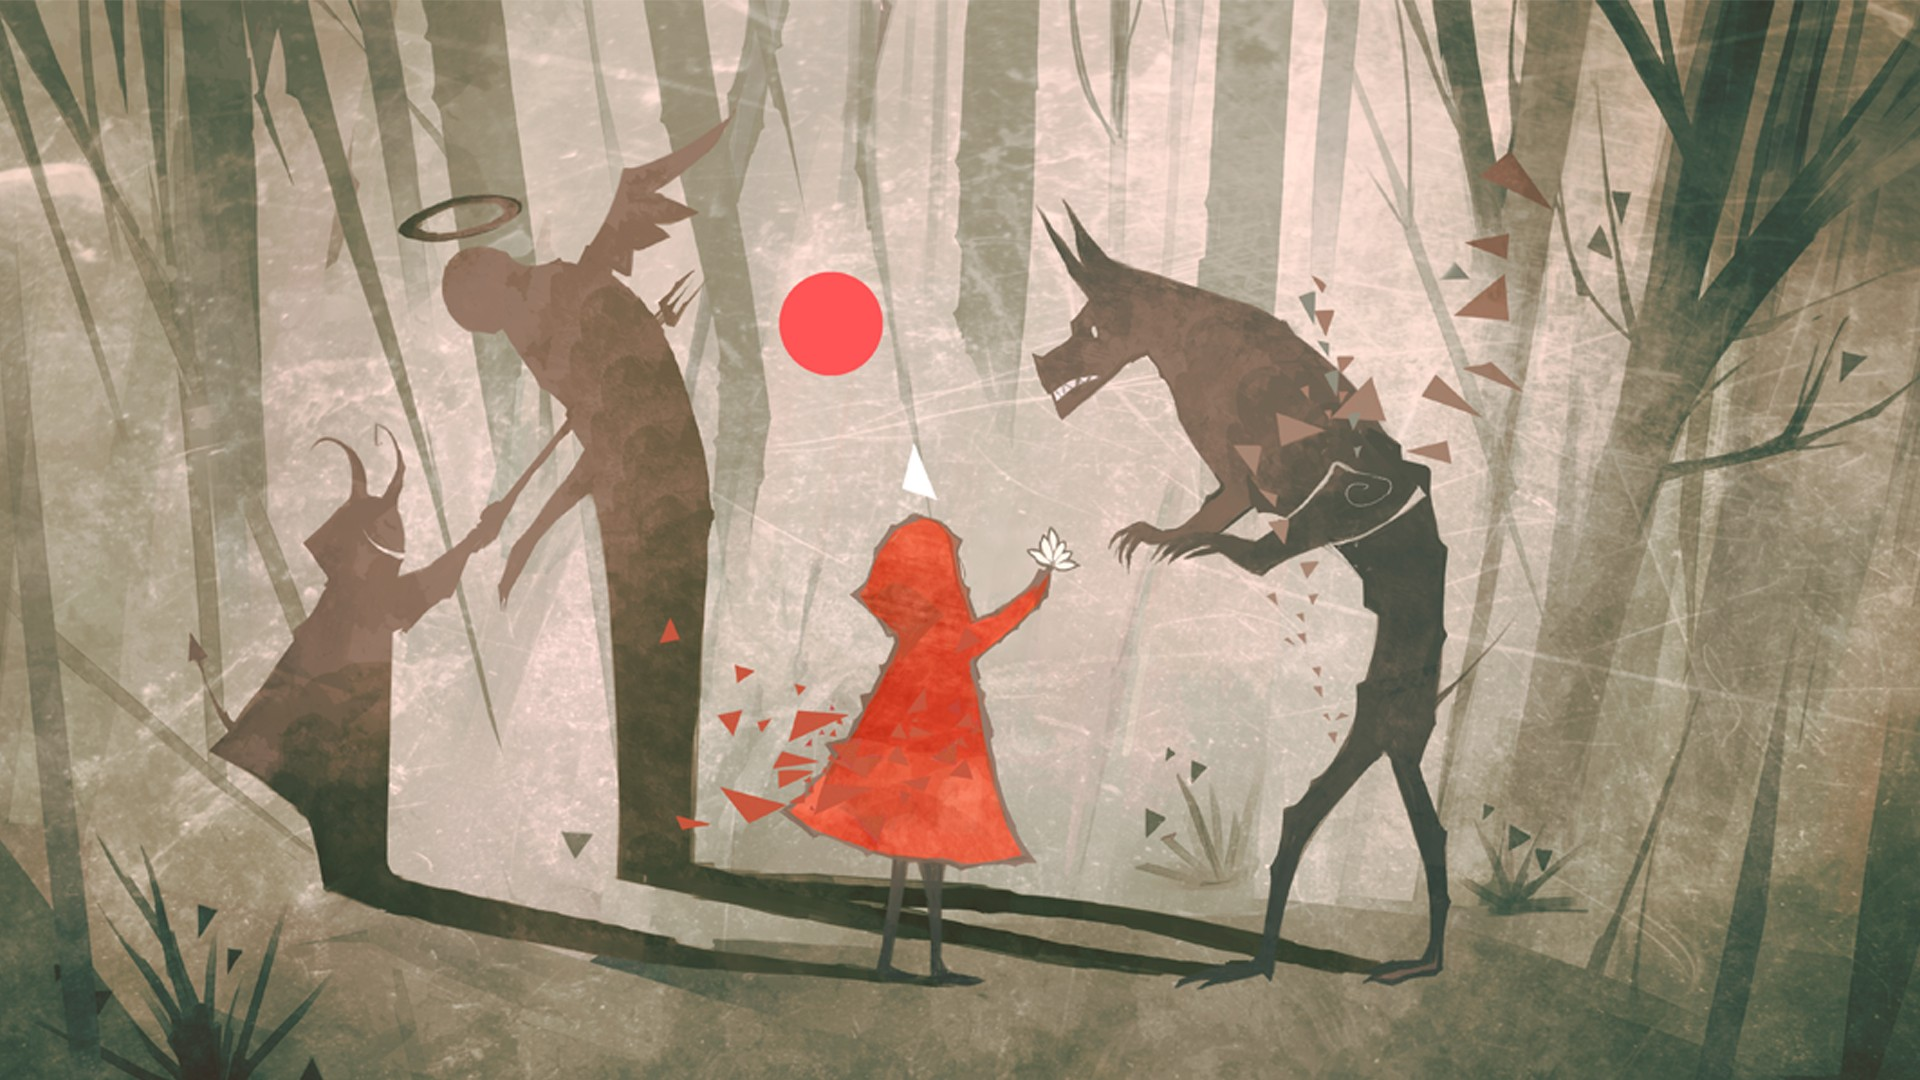 Red Riding Hood Hd Wallpaper Background Image 1920x1080 Id